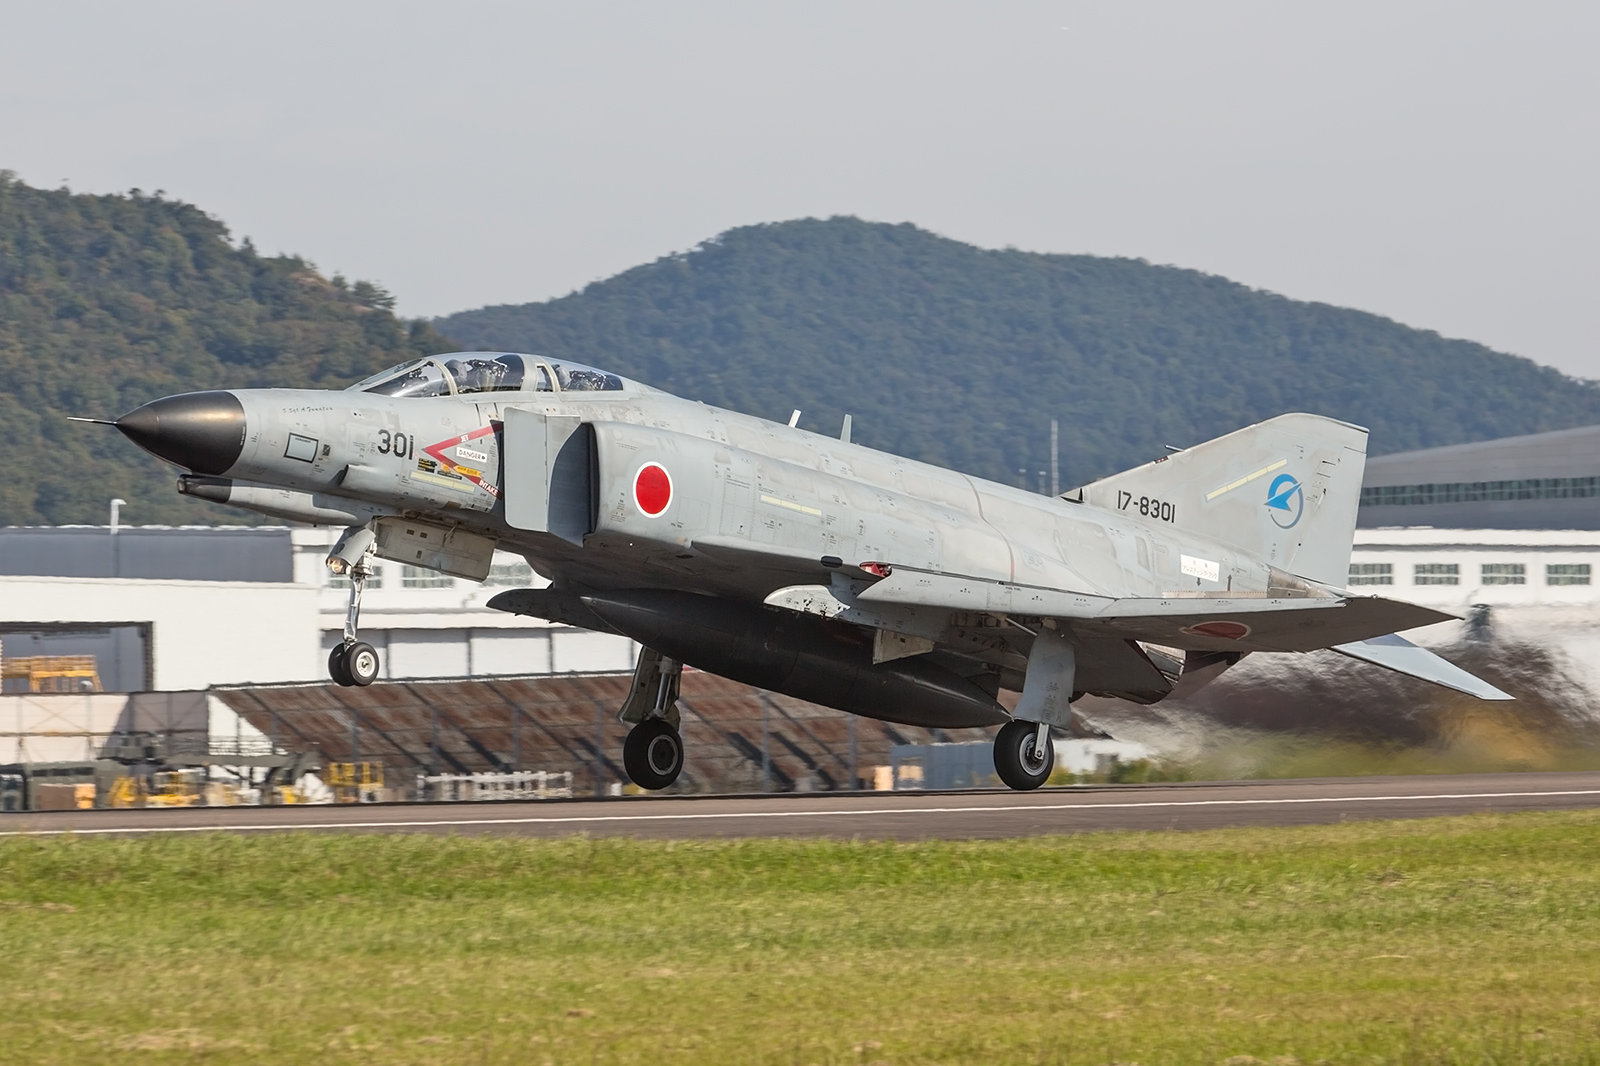 The mother of all Phantom´s, die 17-8301 beim Start in Kakamigahara.